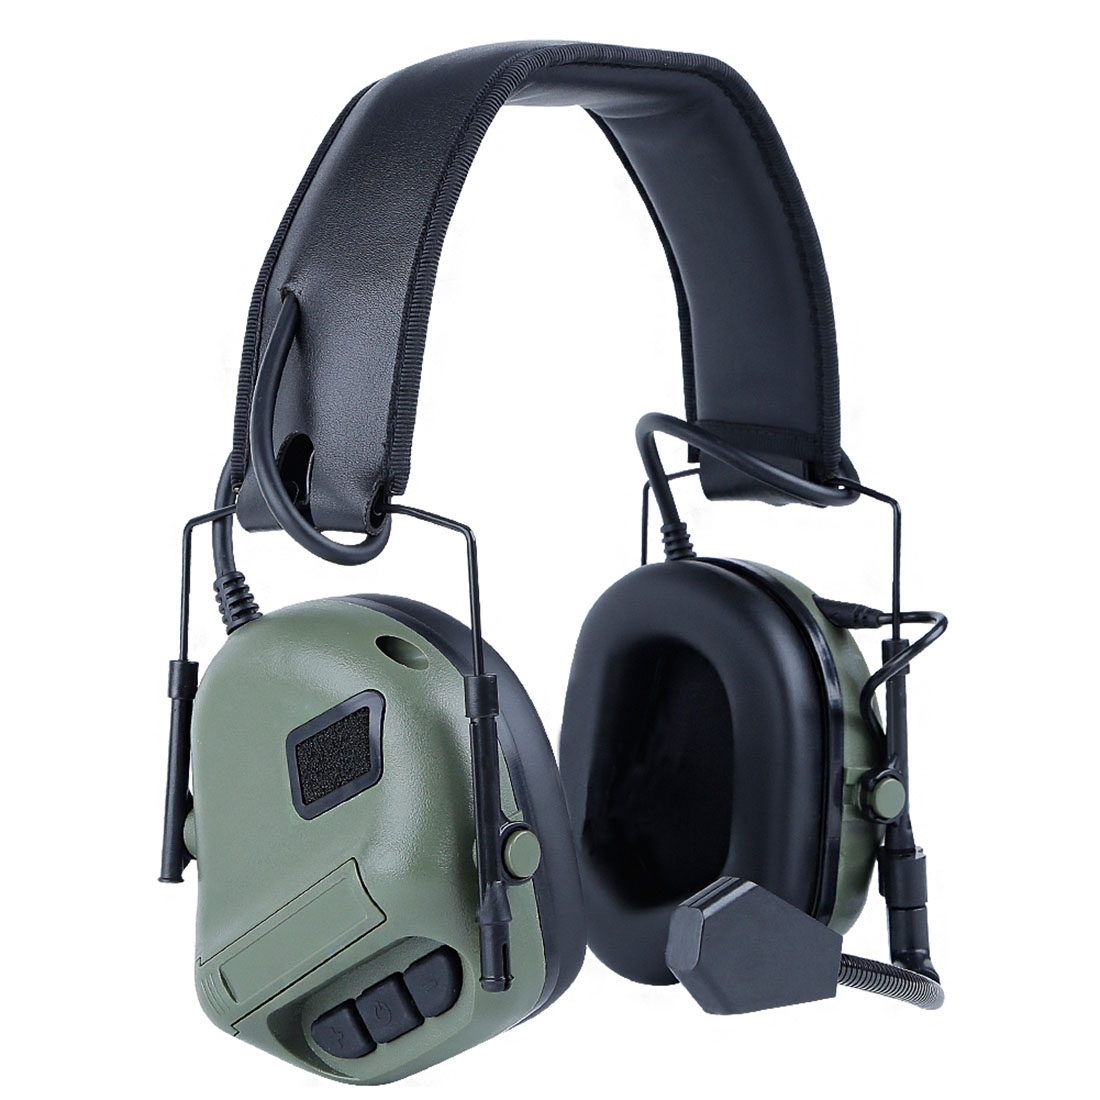 WST Gen.5 Head-mounted Communication Noise Canceling Headphones Sound Pickup Noise Reduction Hunting Outdoor Tactical Headset